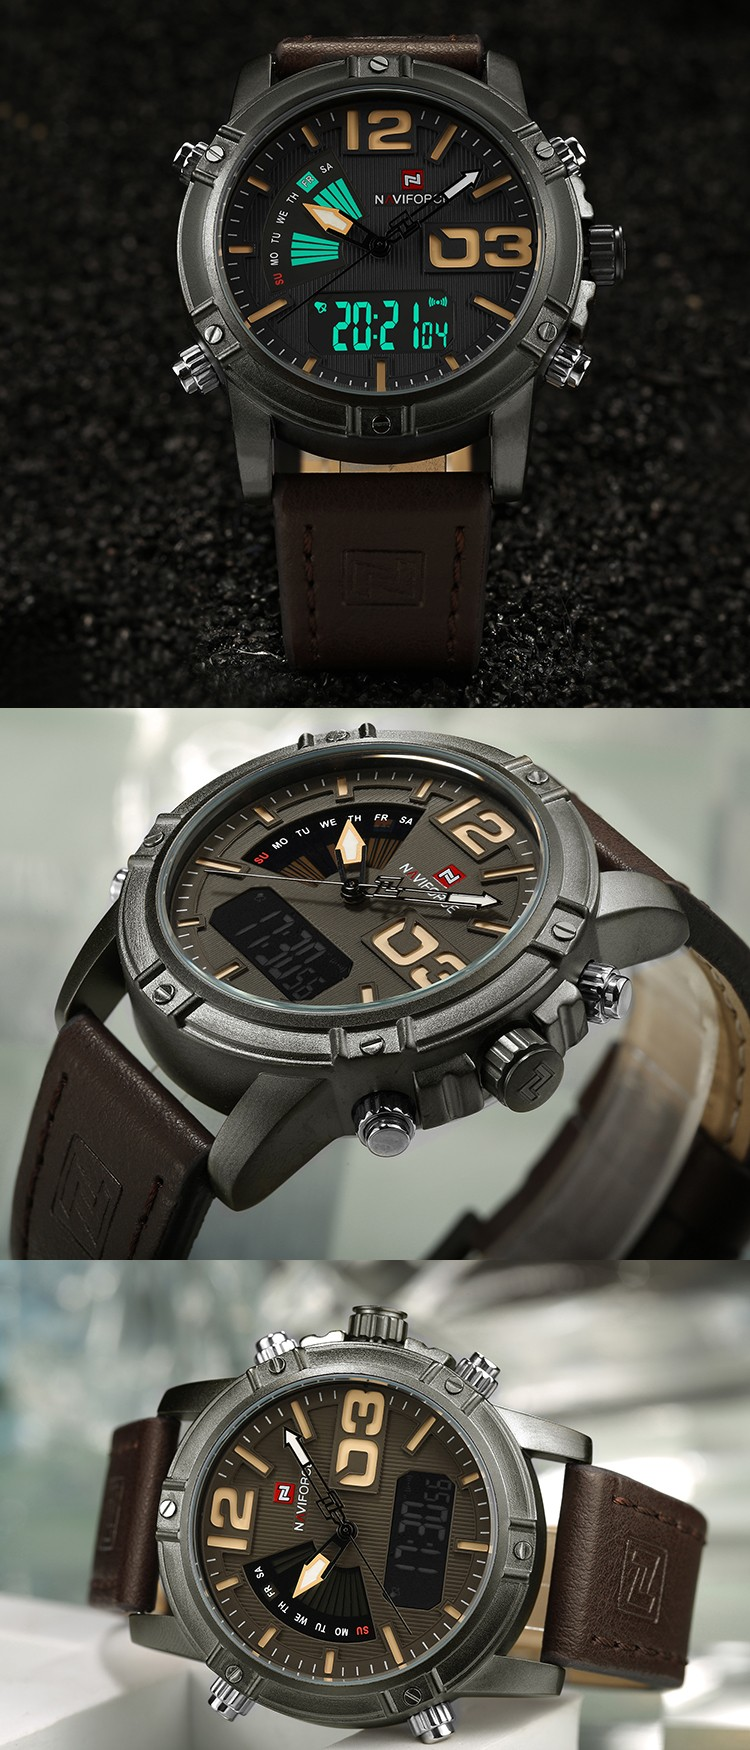 Brand fashion dual time clocks time business alarm date week for man leather strap digital analog sport luxury naviforce watch